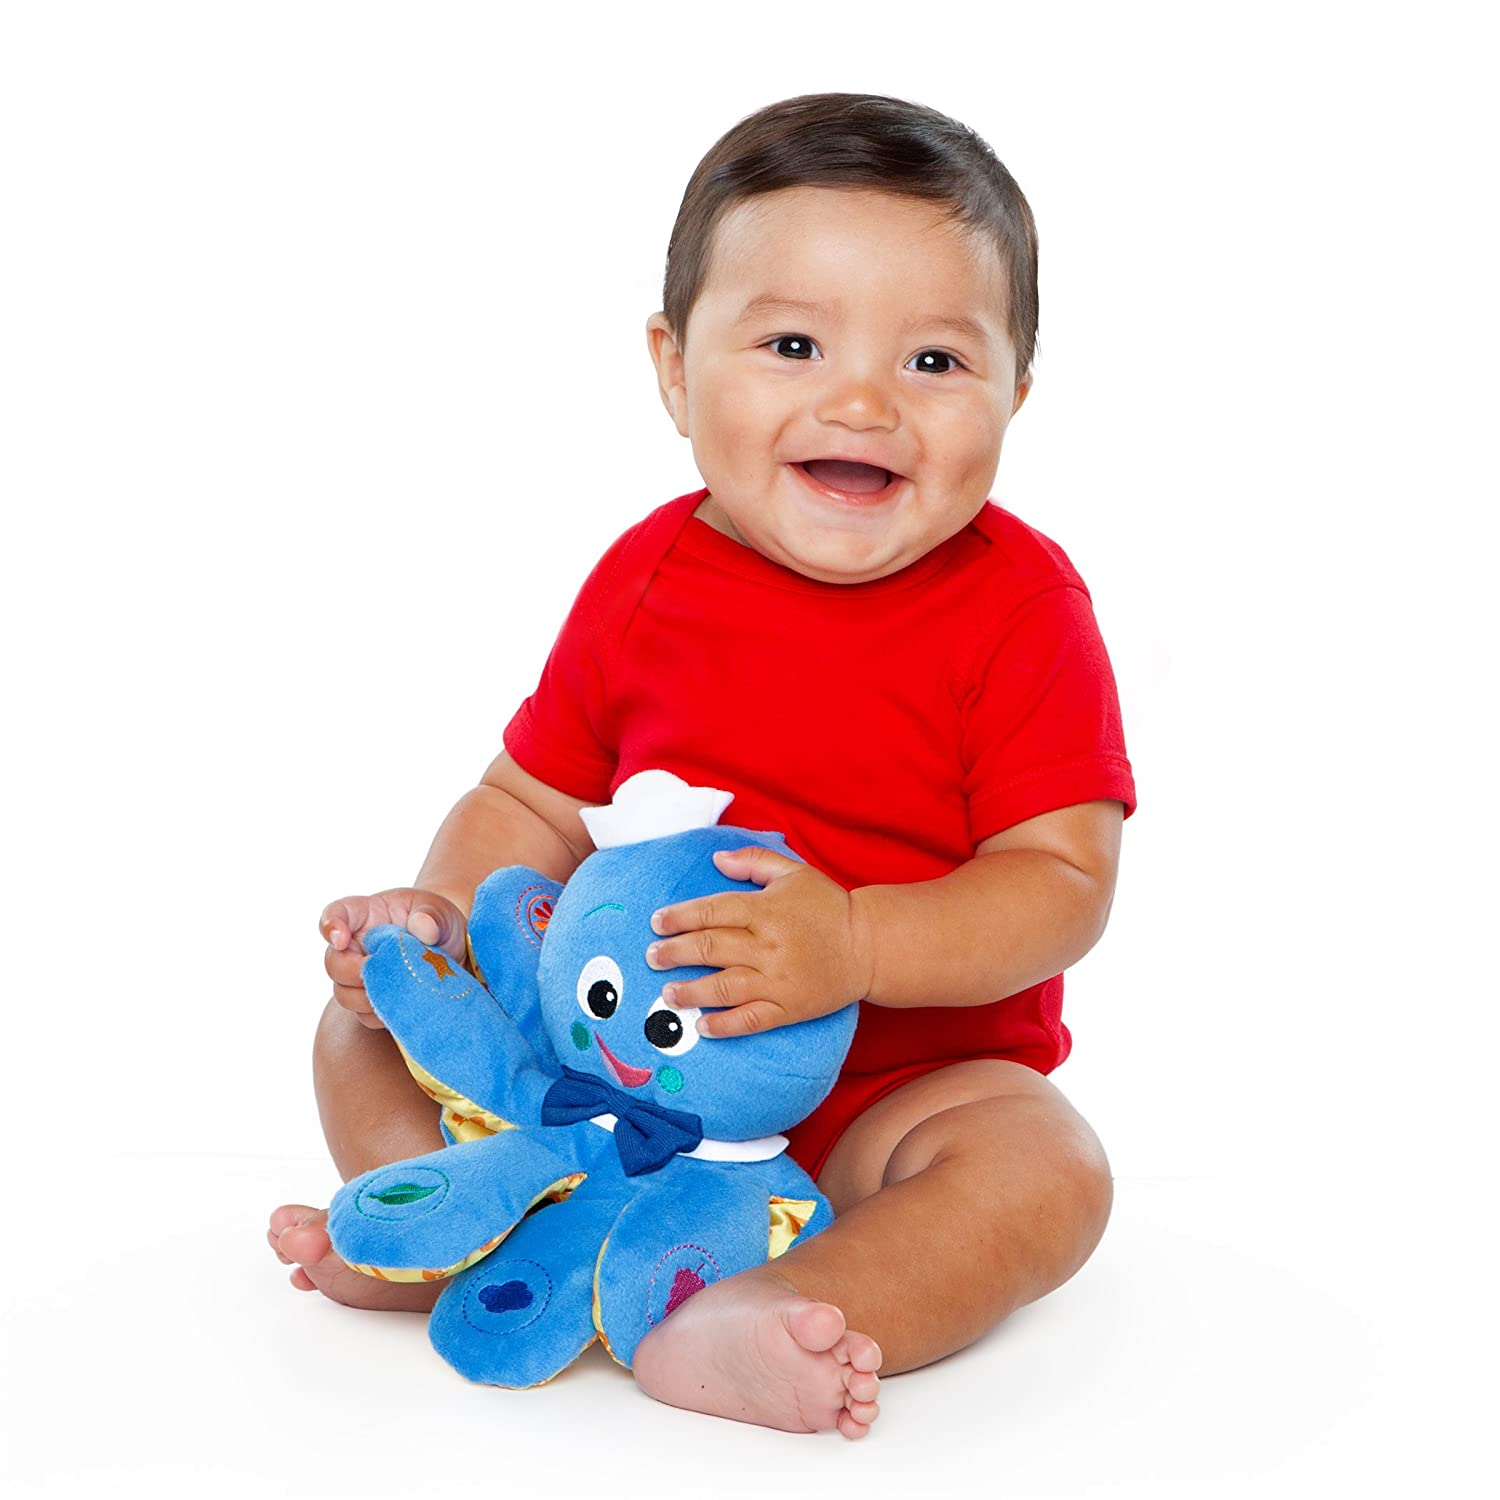 Toddler Development Toys : Baby einstein octoplush developmental infant toddlers